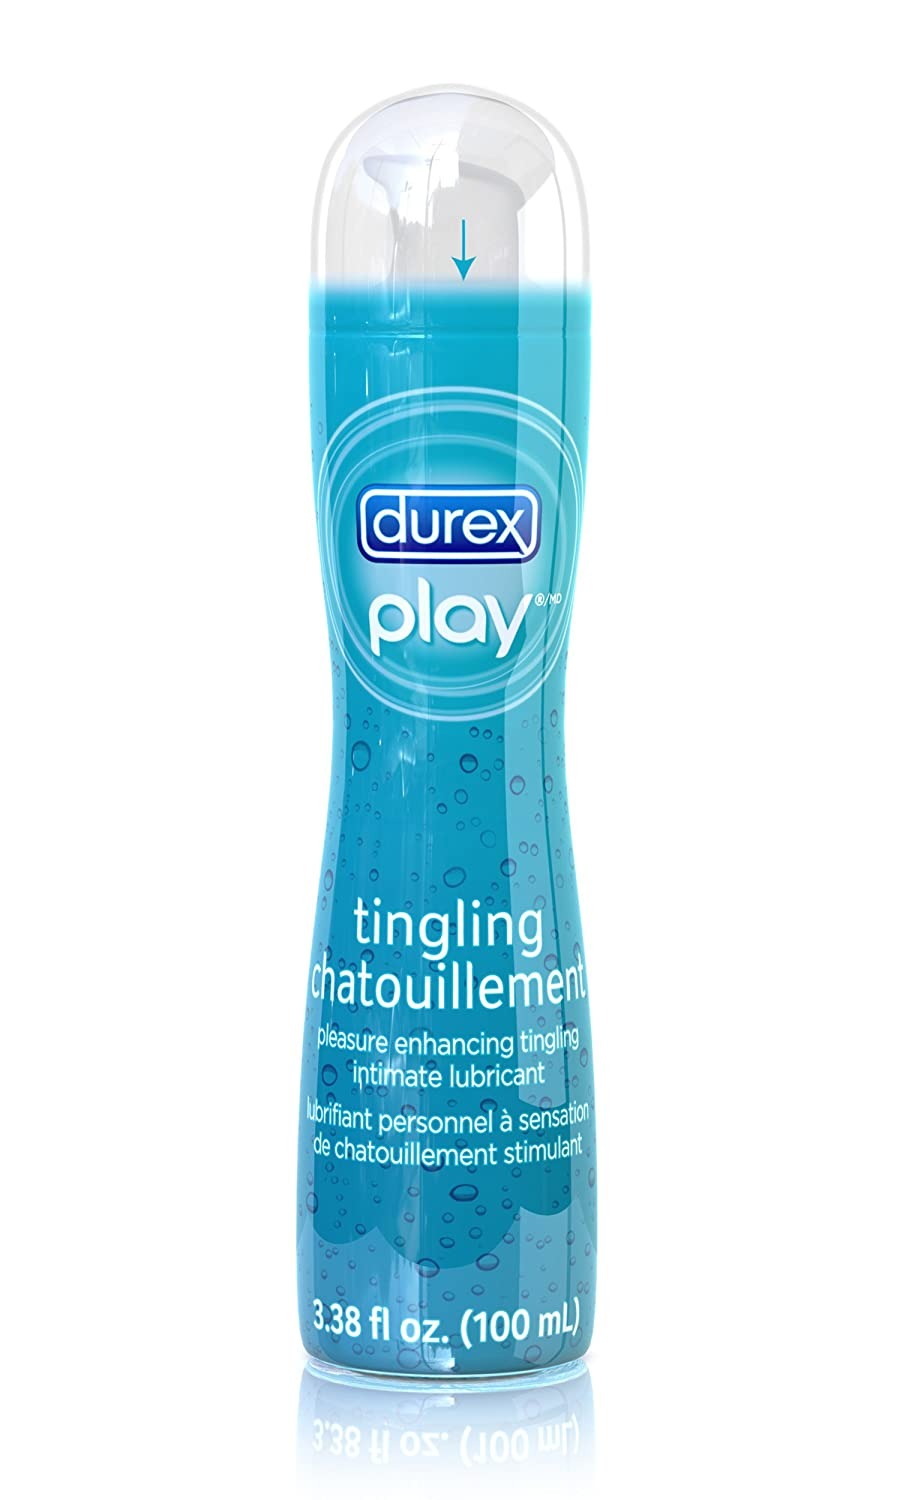 Ky tingling lubricant